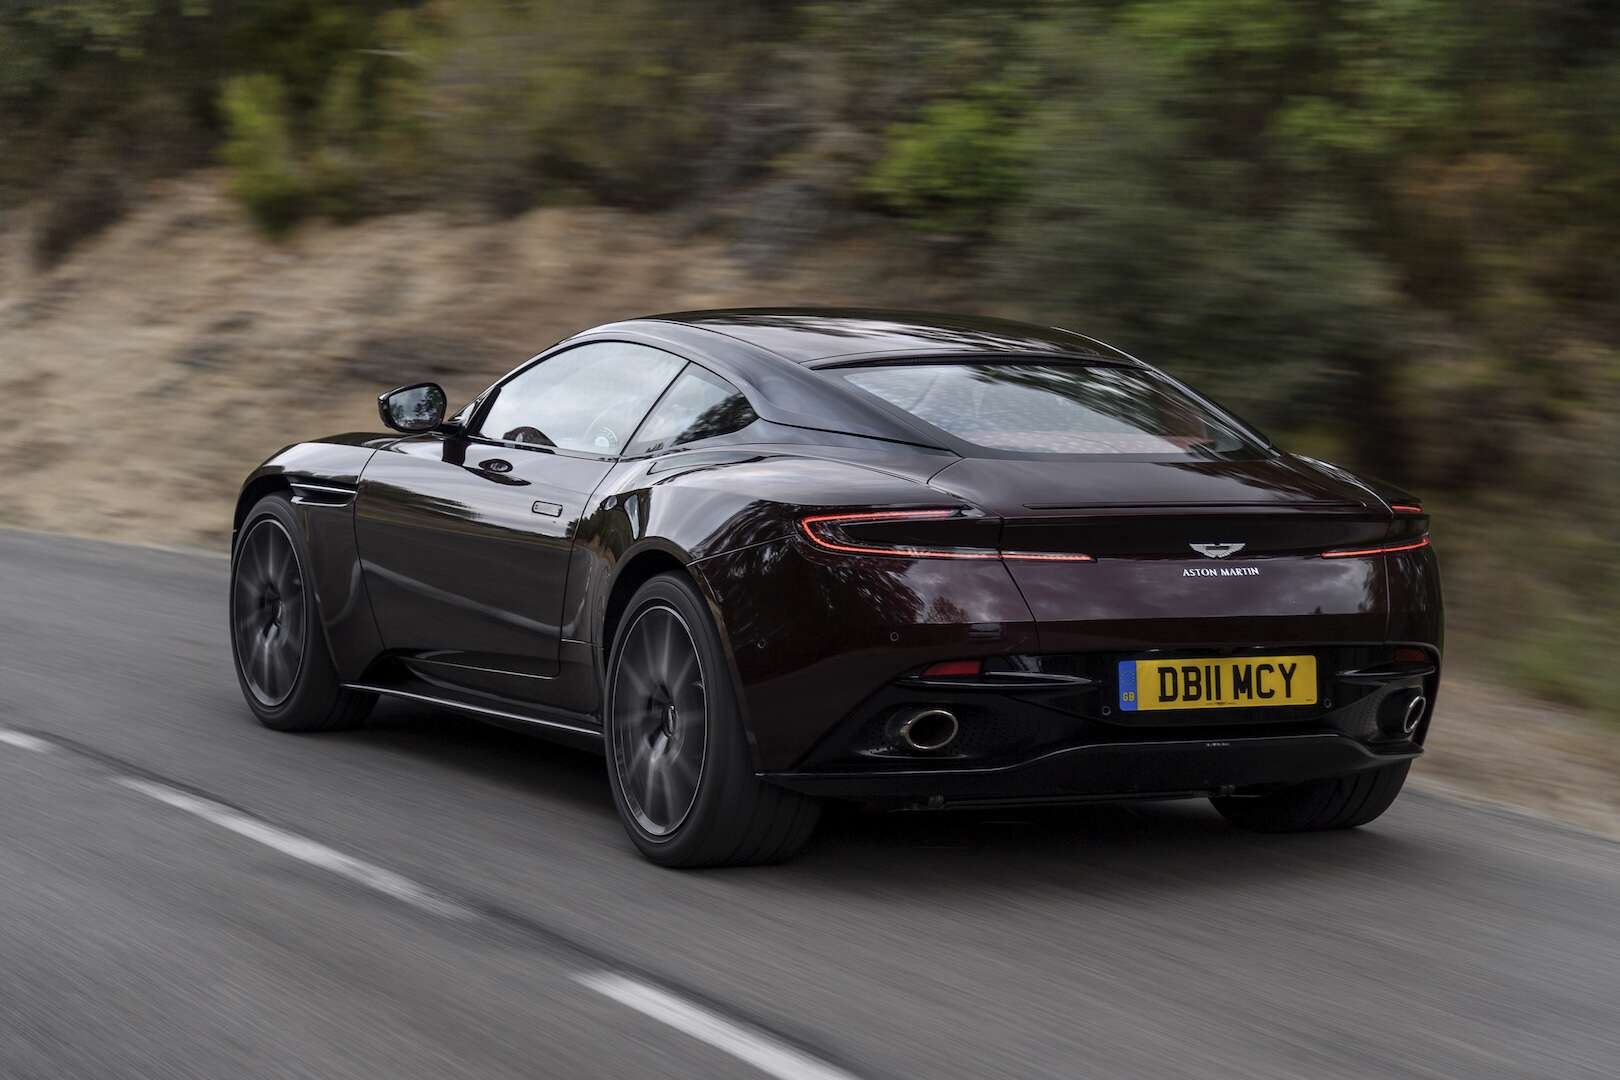 2018 Aston Martin DB11 V-8 Review: German Power, British